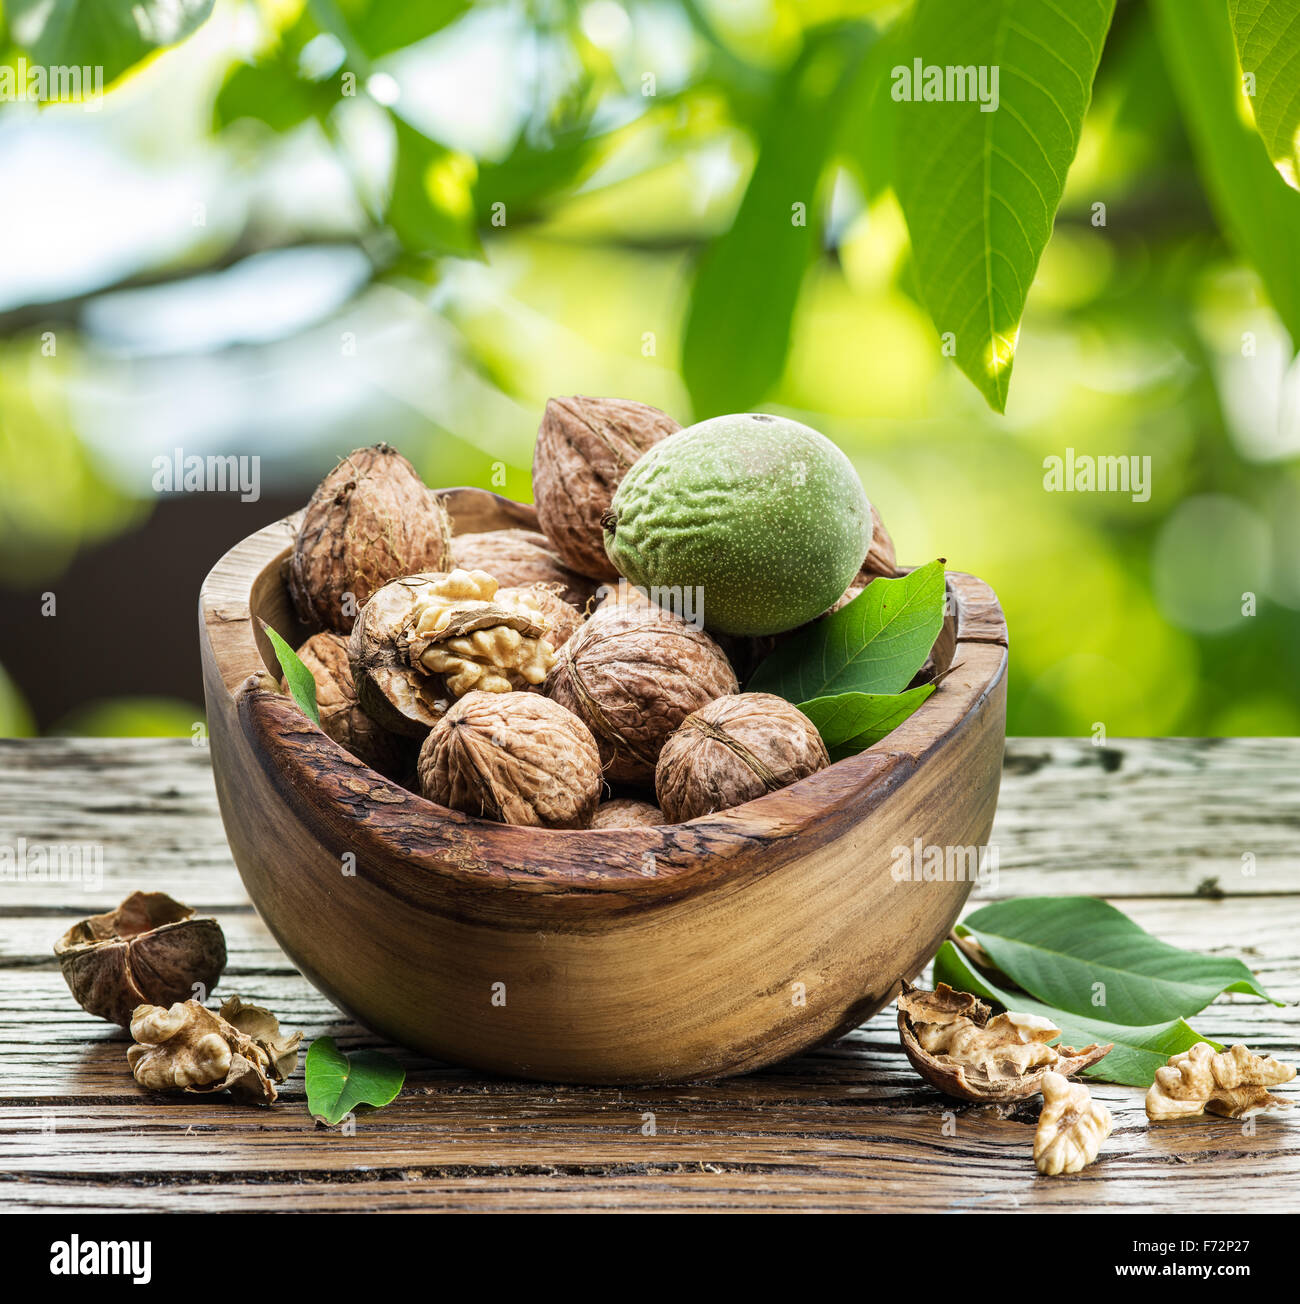 Walnuts in the wooden bowl on the table under the walnut-tree. - Stock Image